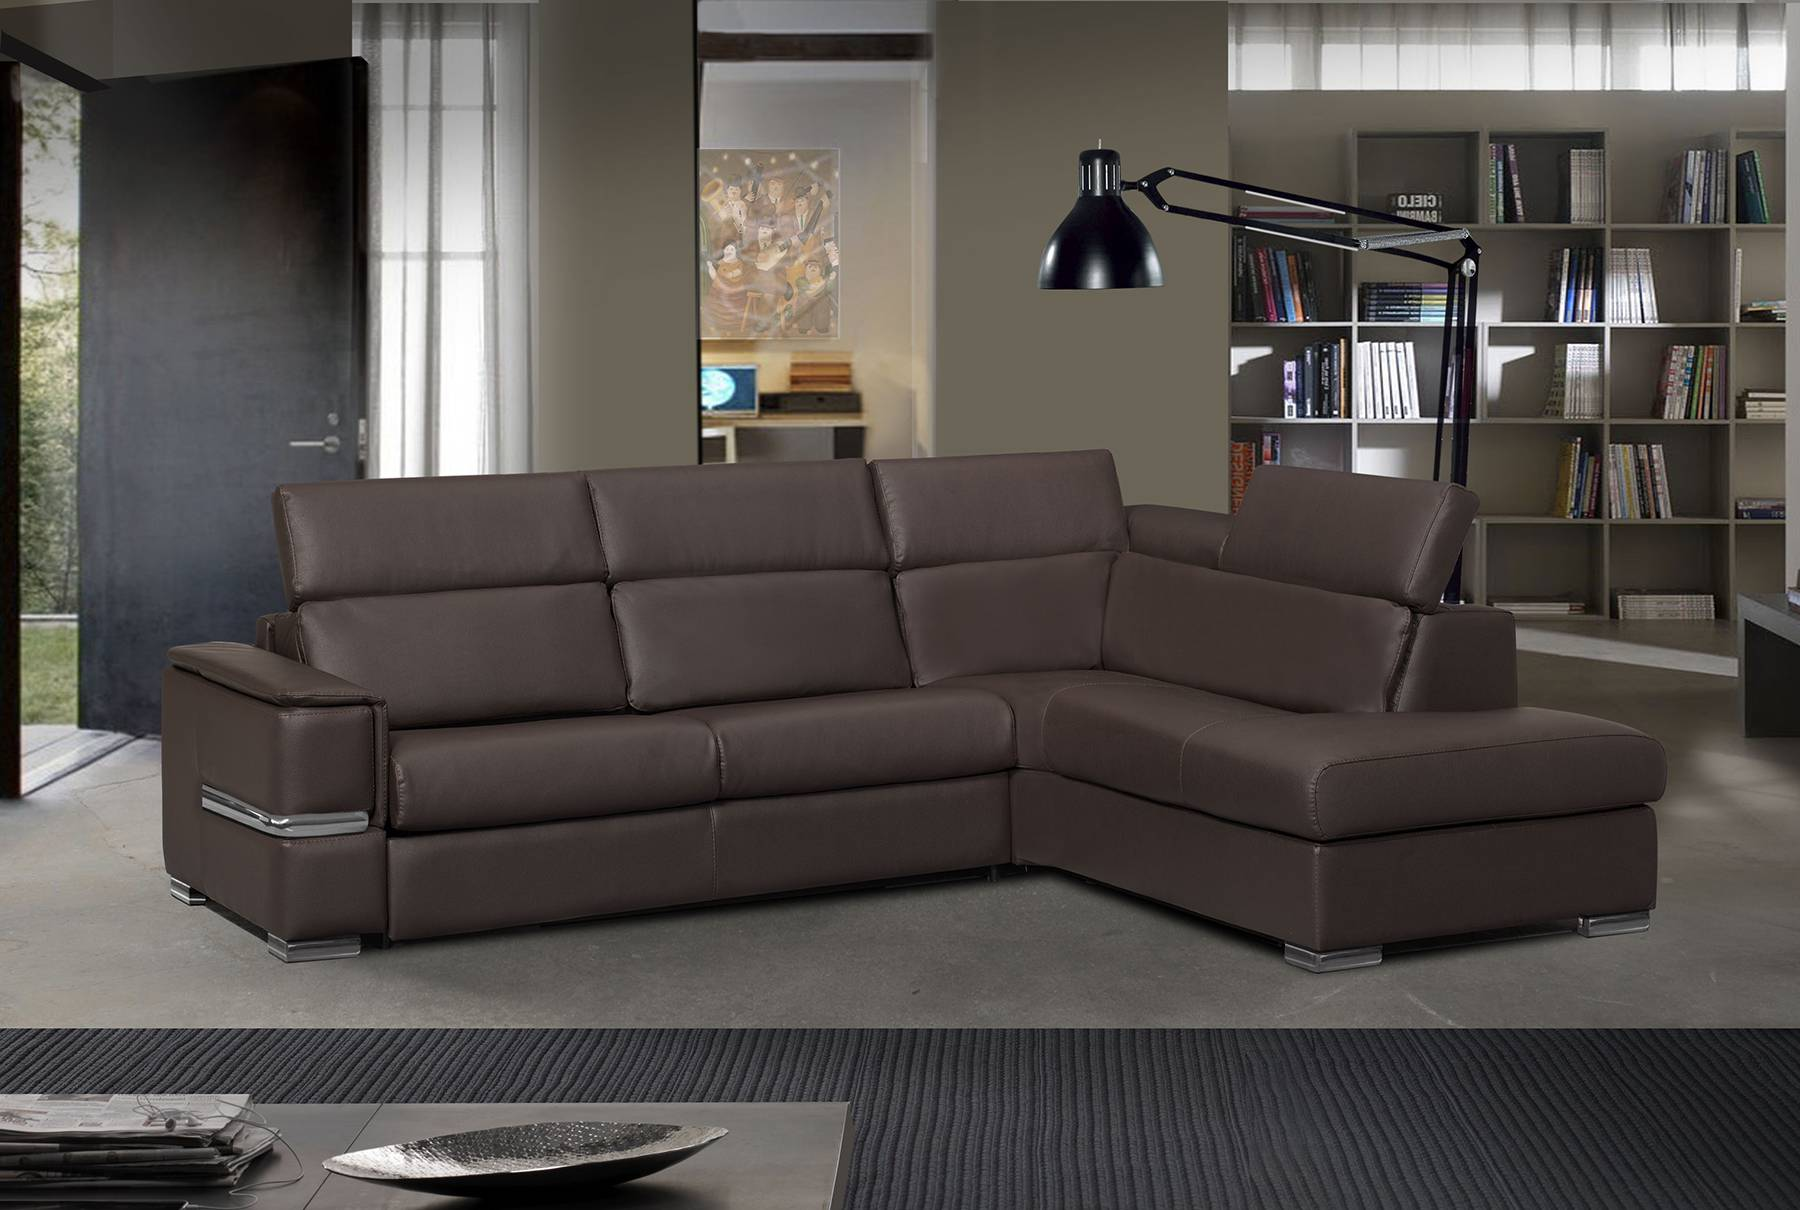 Brown Leather Sectional Sofa with Fold Out Sleeper Mattress